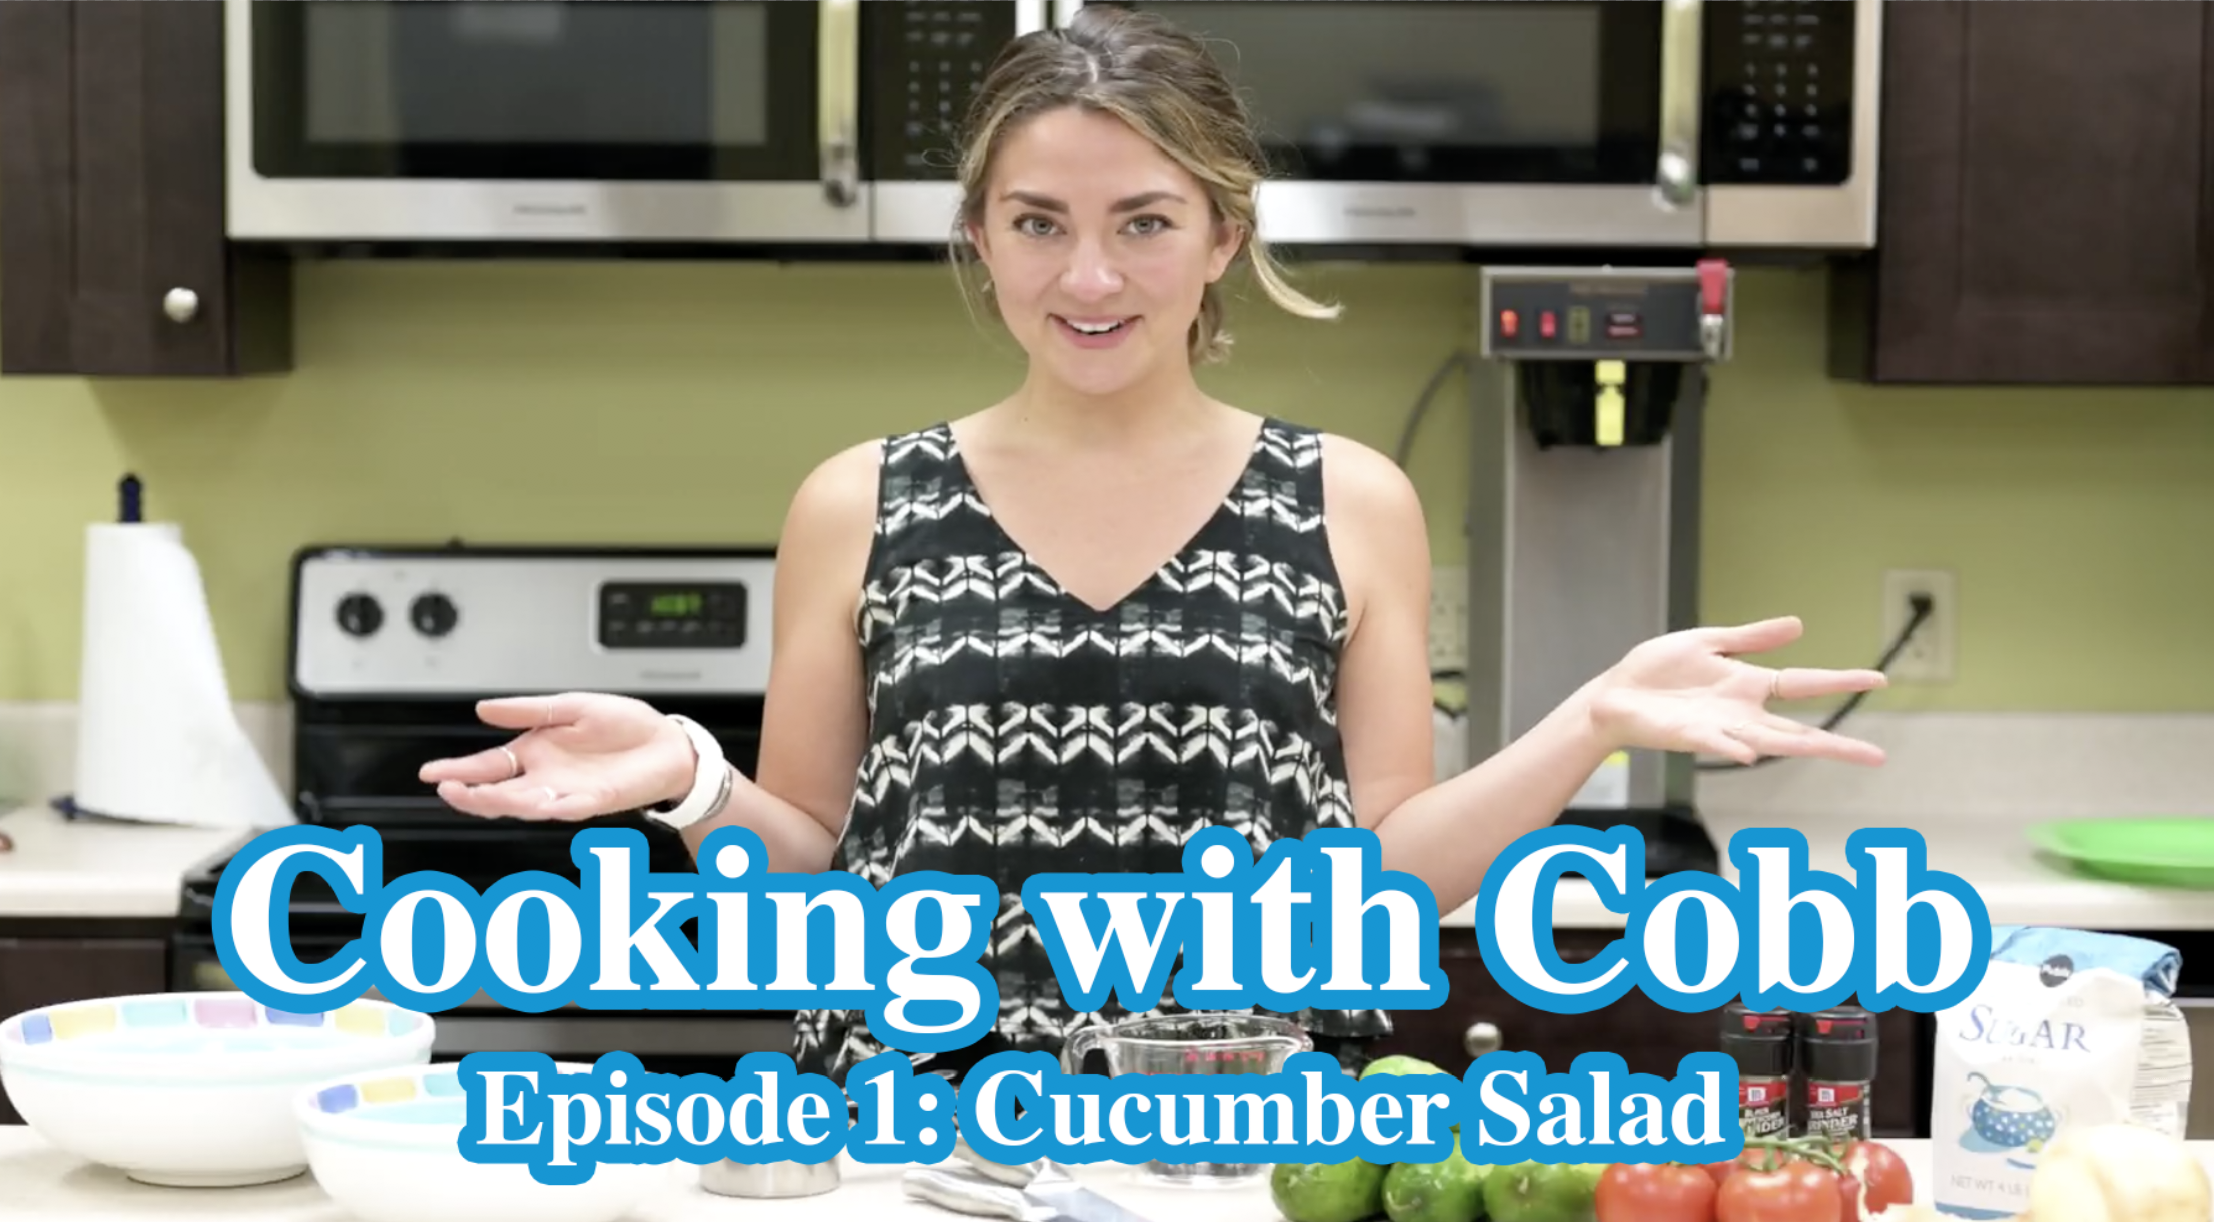 Cooking with Cobb - Episode 01